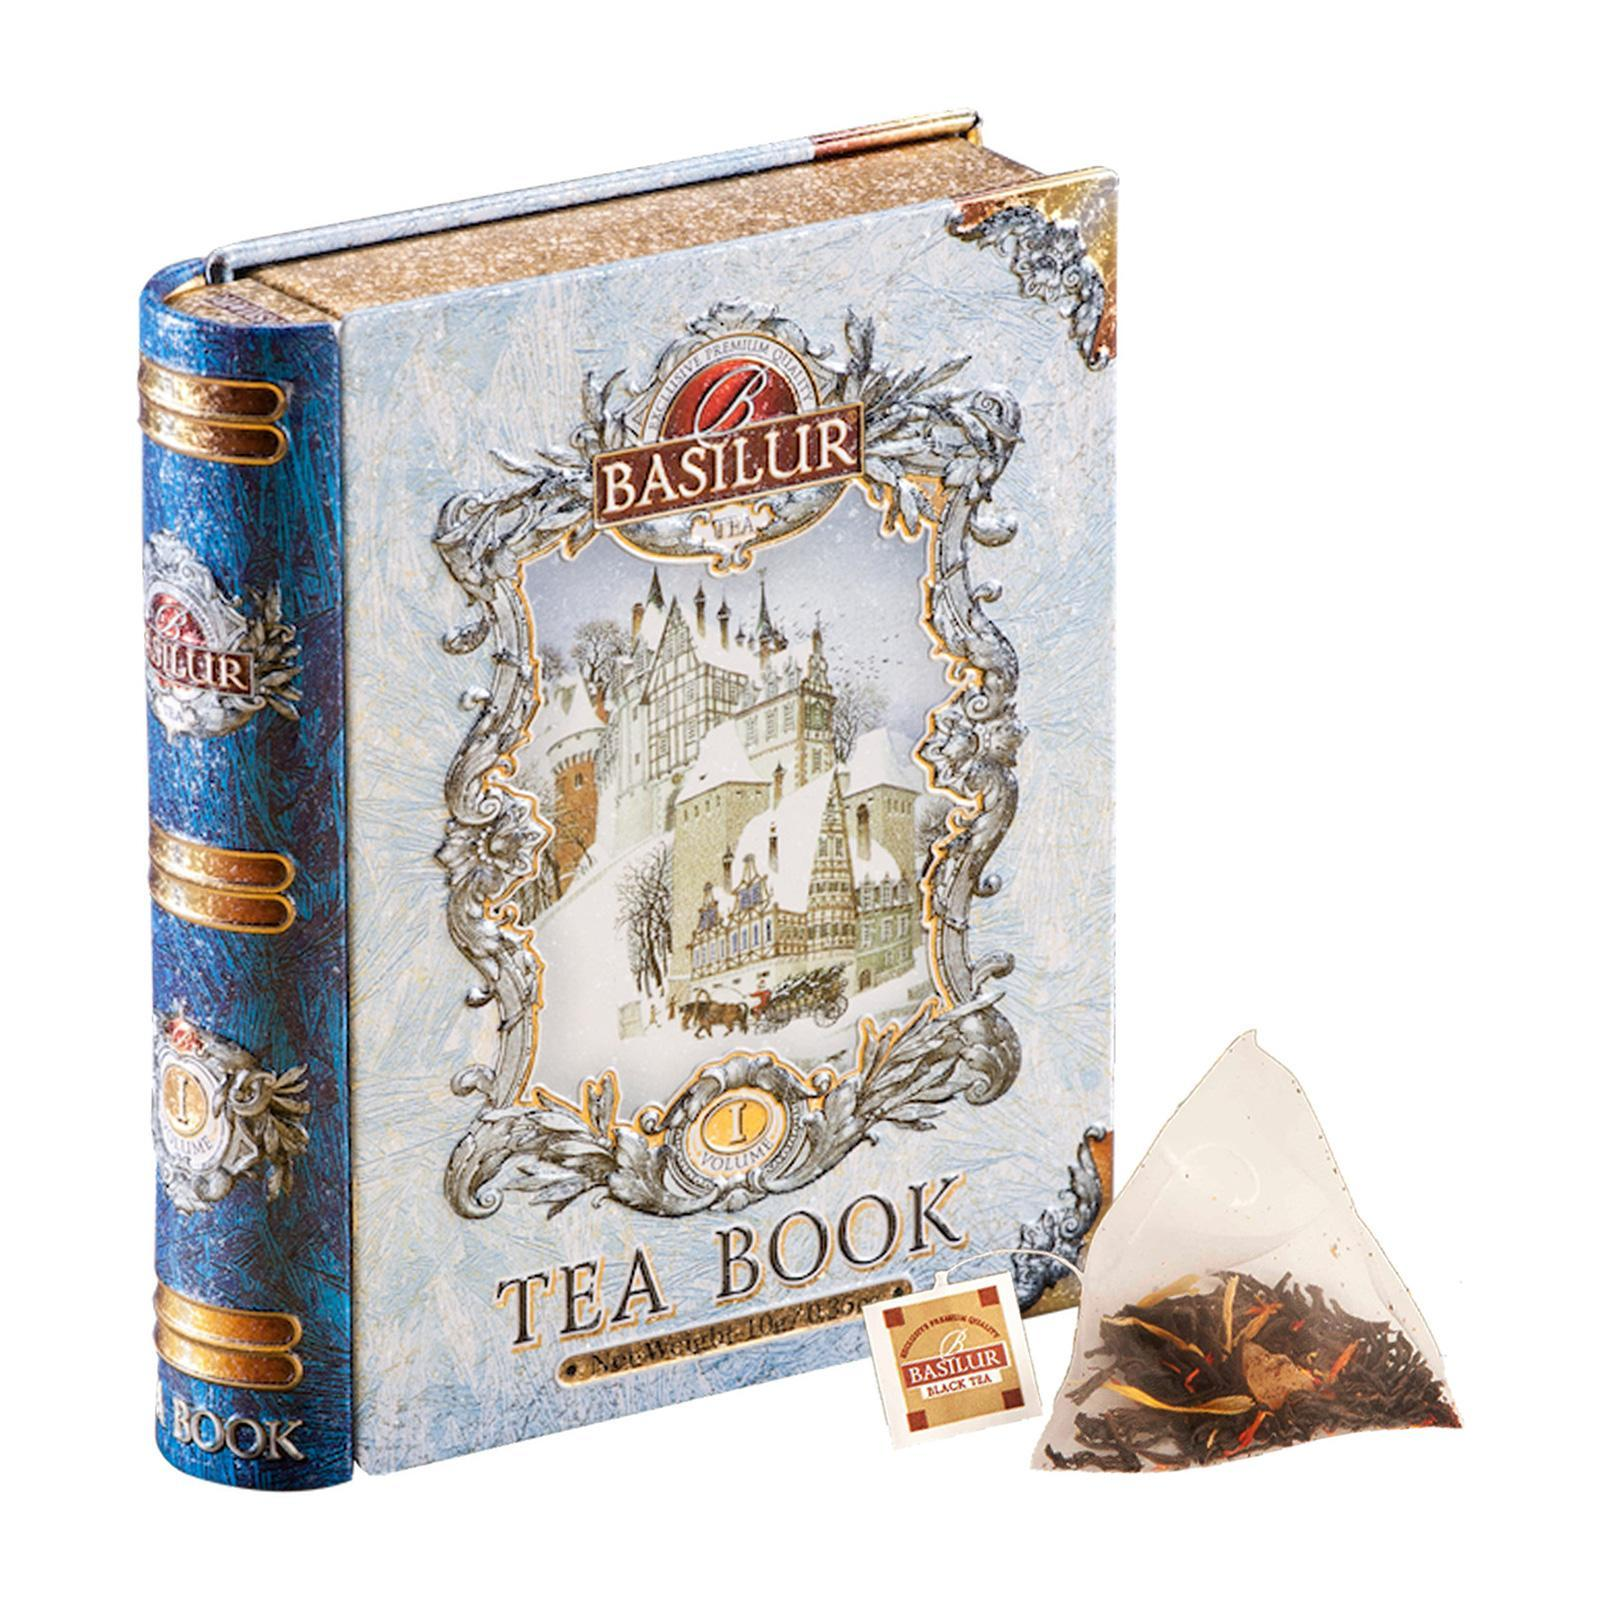 Basilur Miniature Tea Book (Roasted Almond Black Tea)